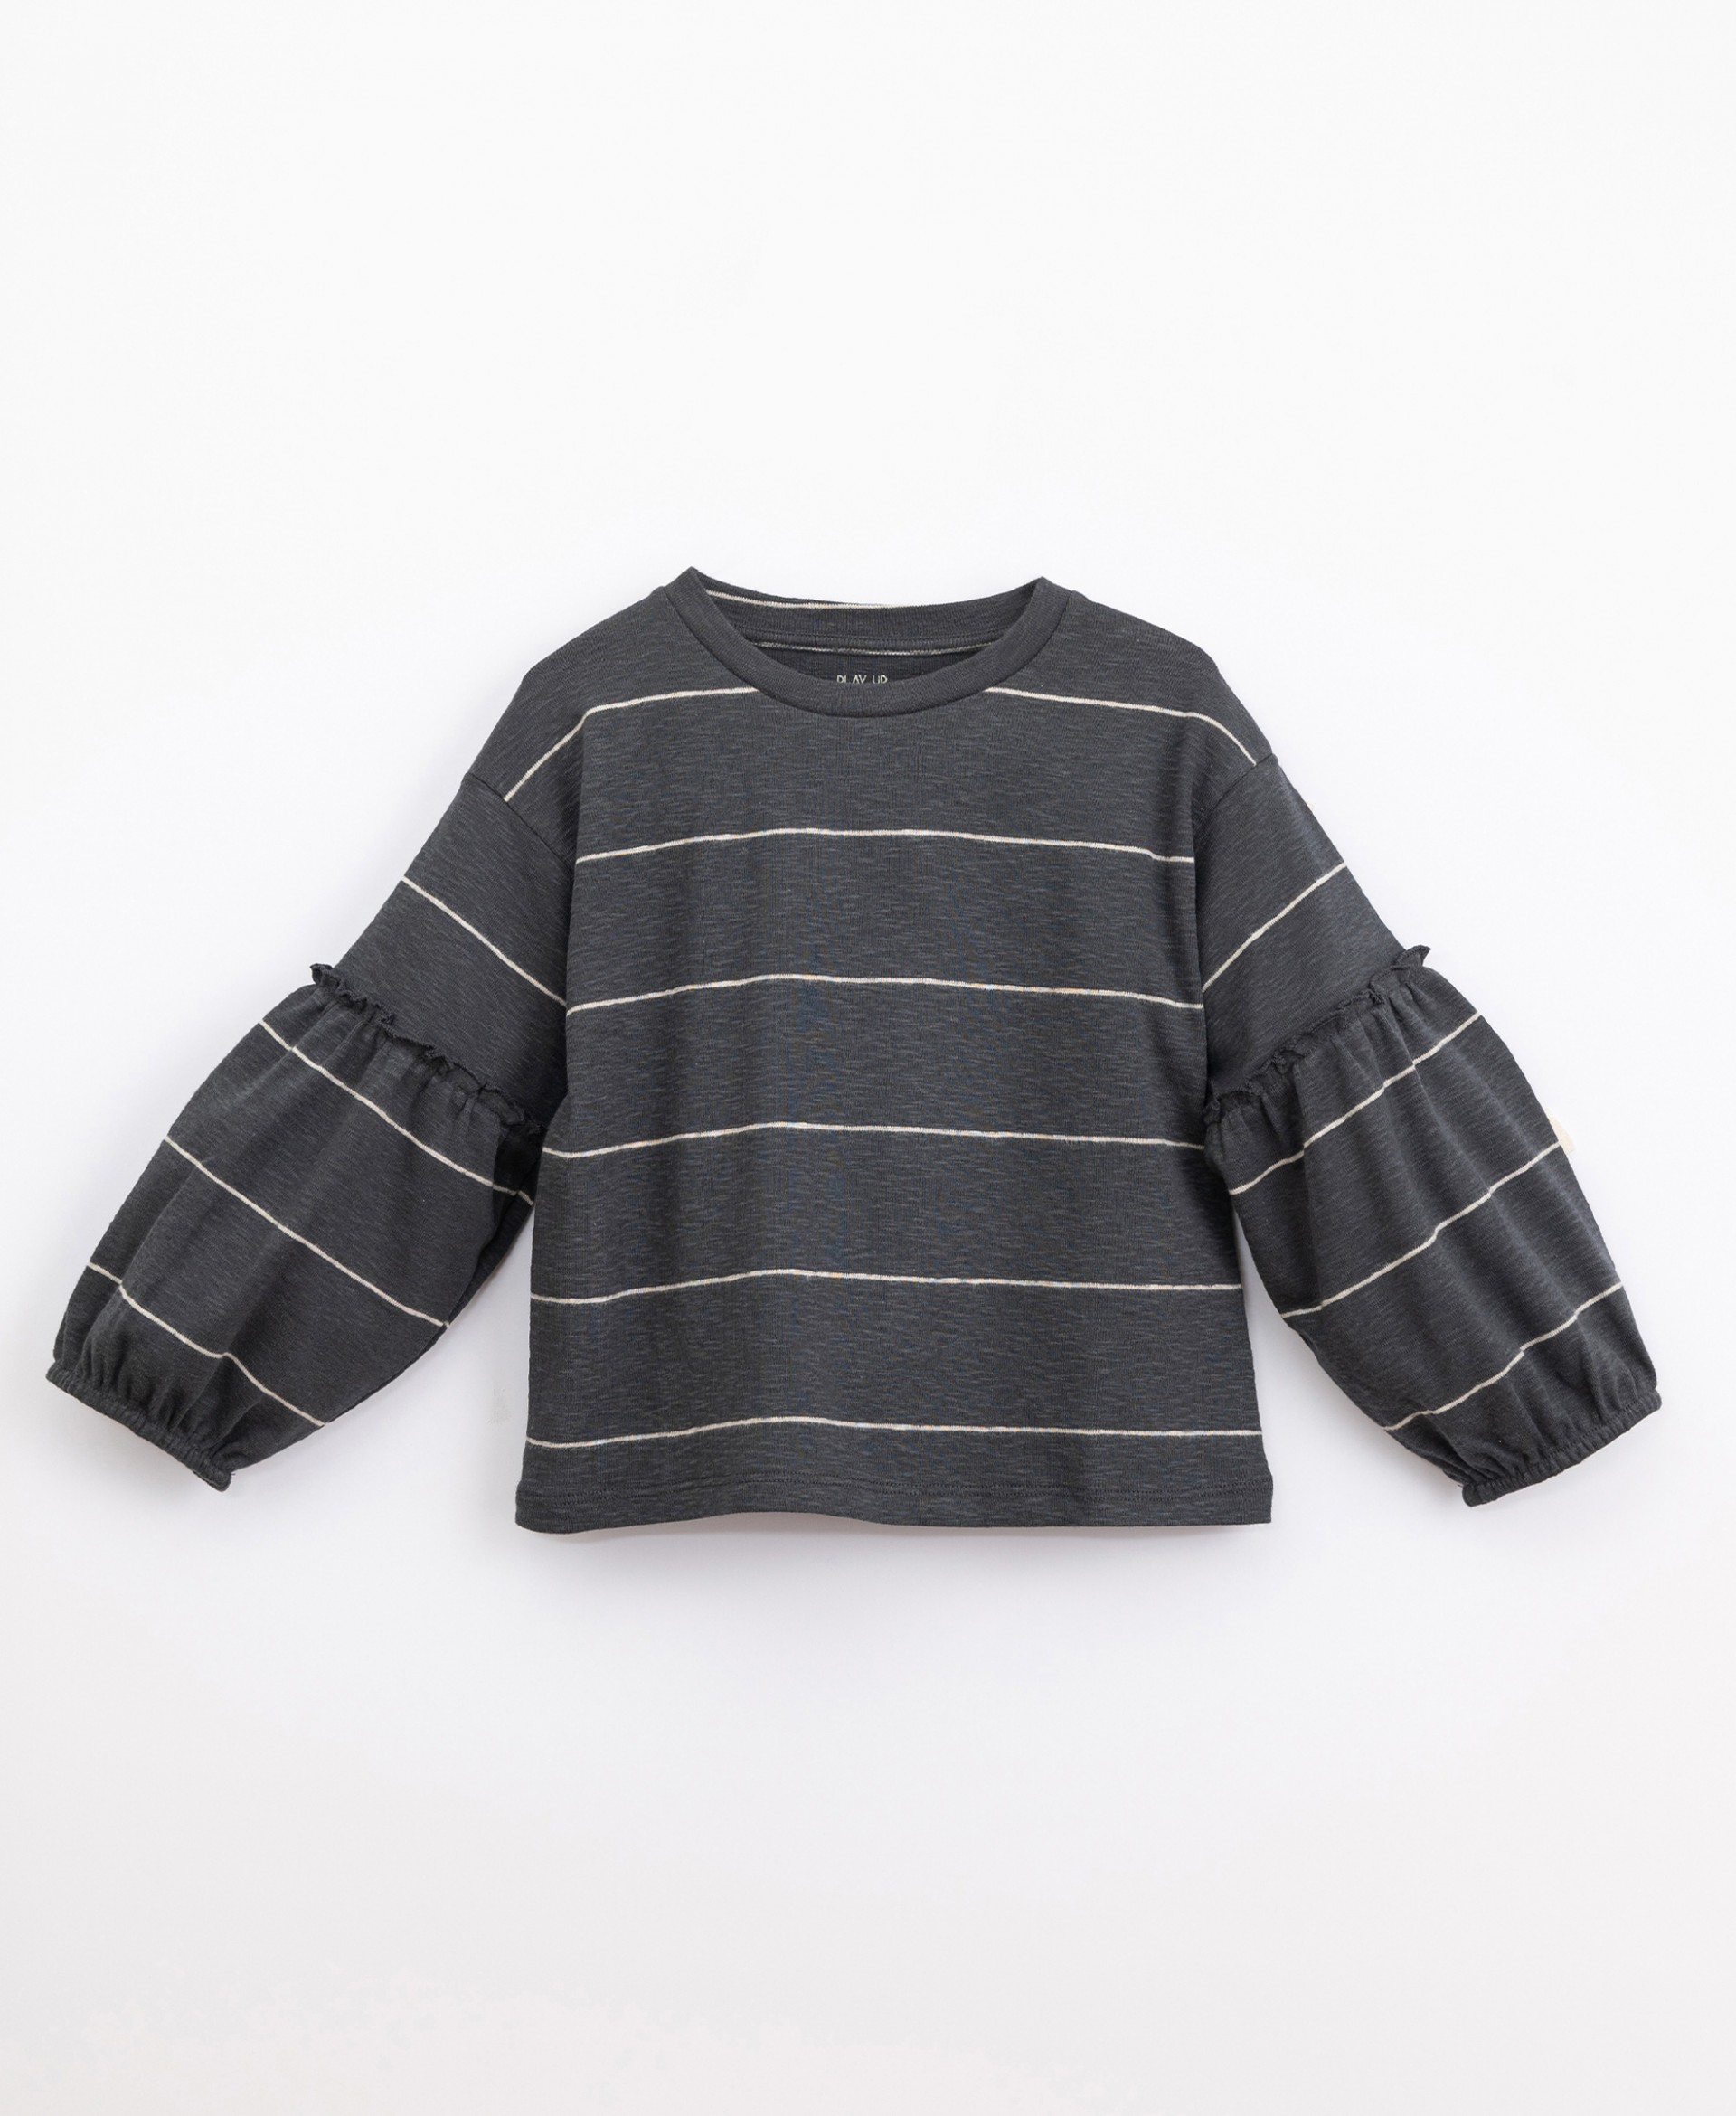 Striped jersey in organic cotton | Illustration